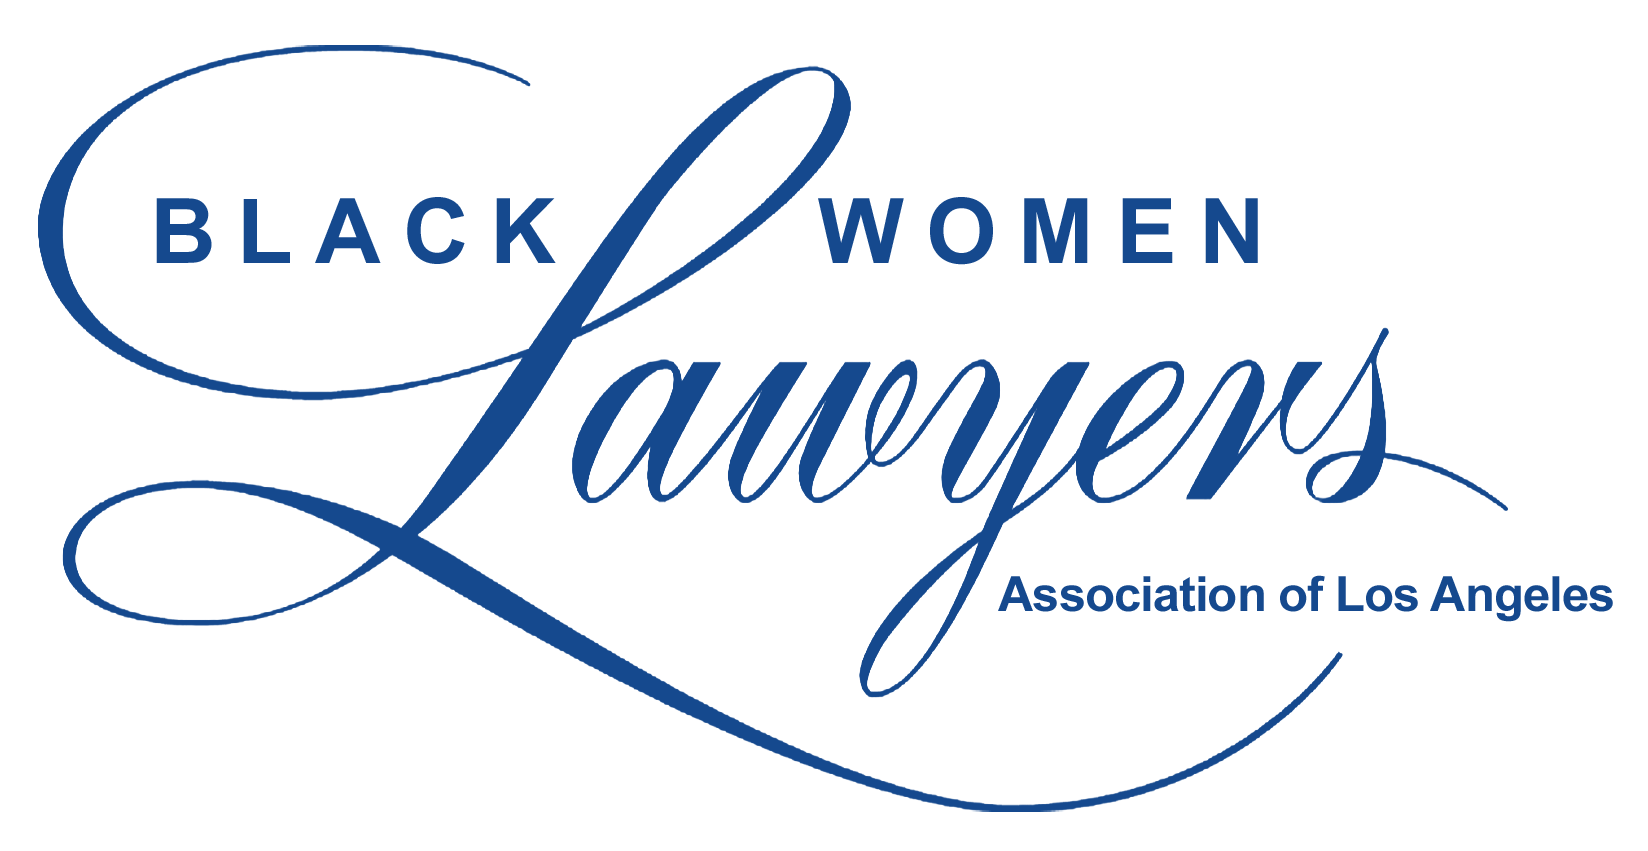 Past Presidents – Black Women Lawyers Association of Los Angeles